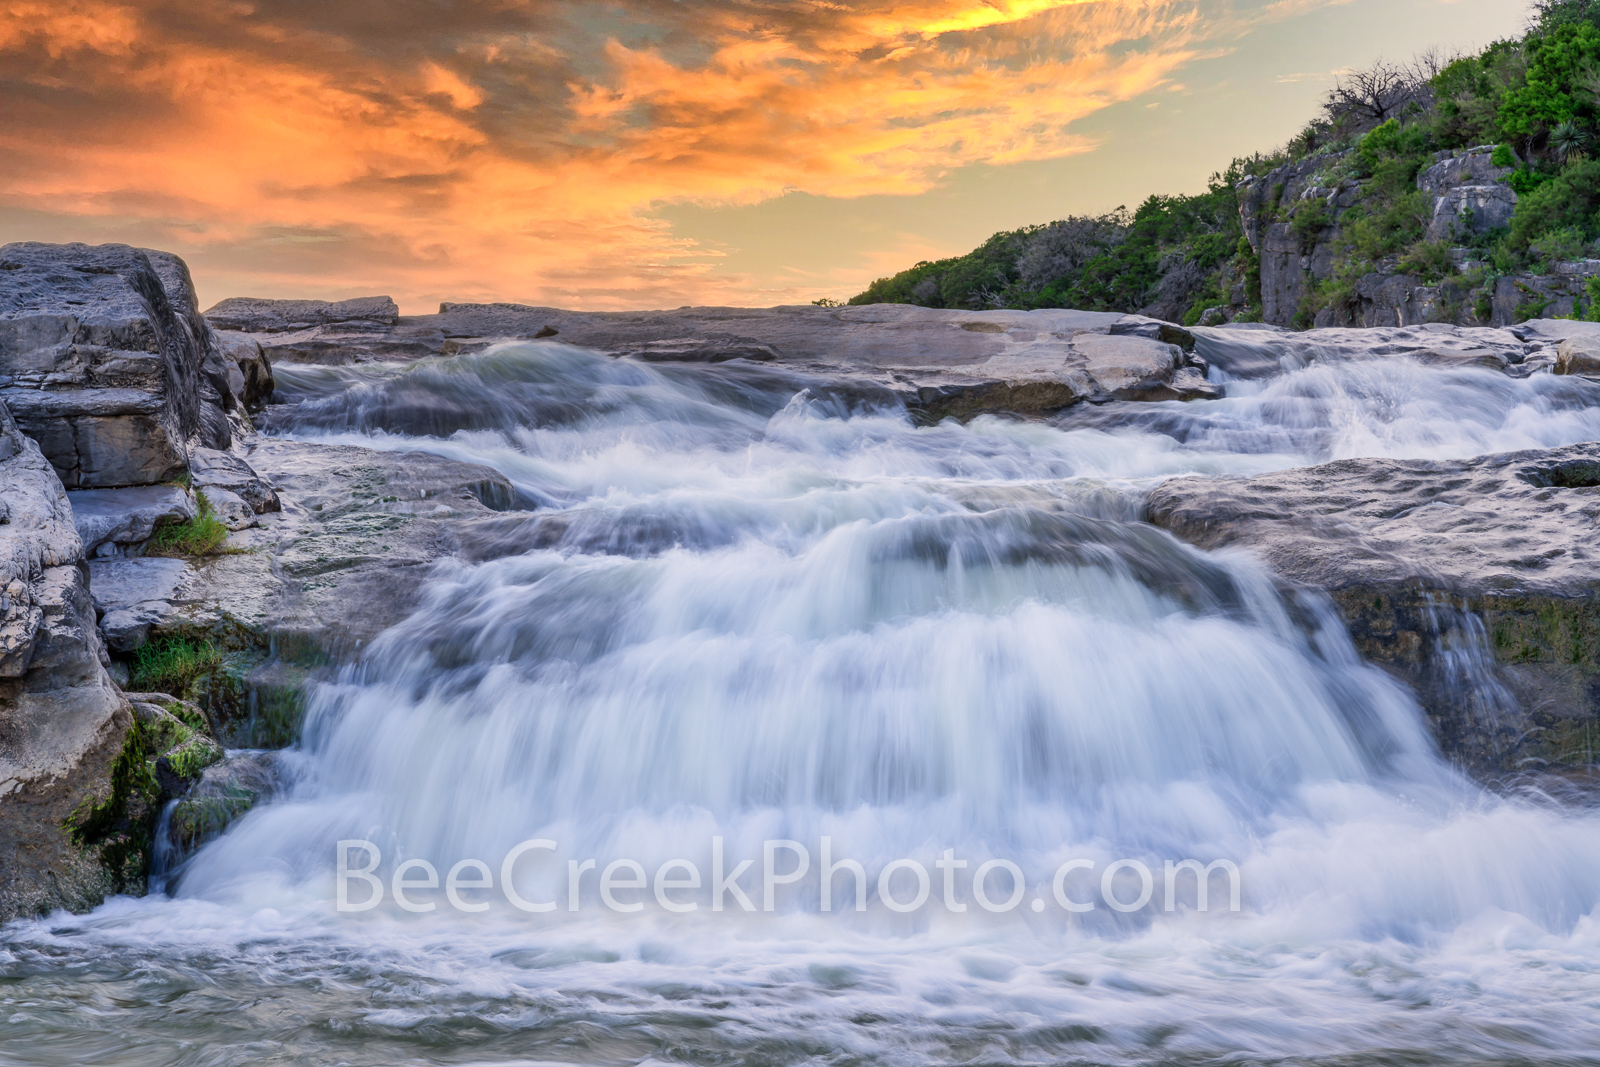 Hill Country Waterfall at Sunset - Capture this waterfall in the Texas hill country at sunset.  I wanted to show the Pedernales...